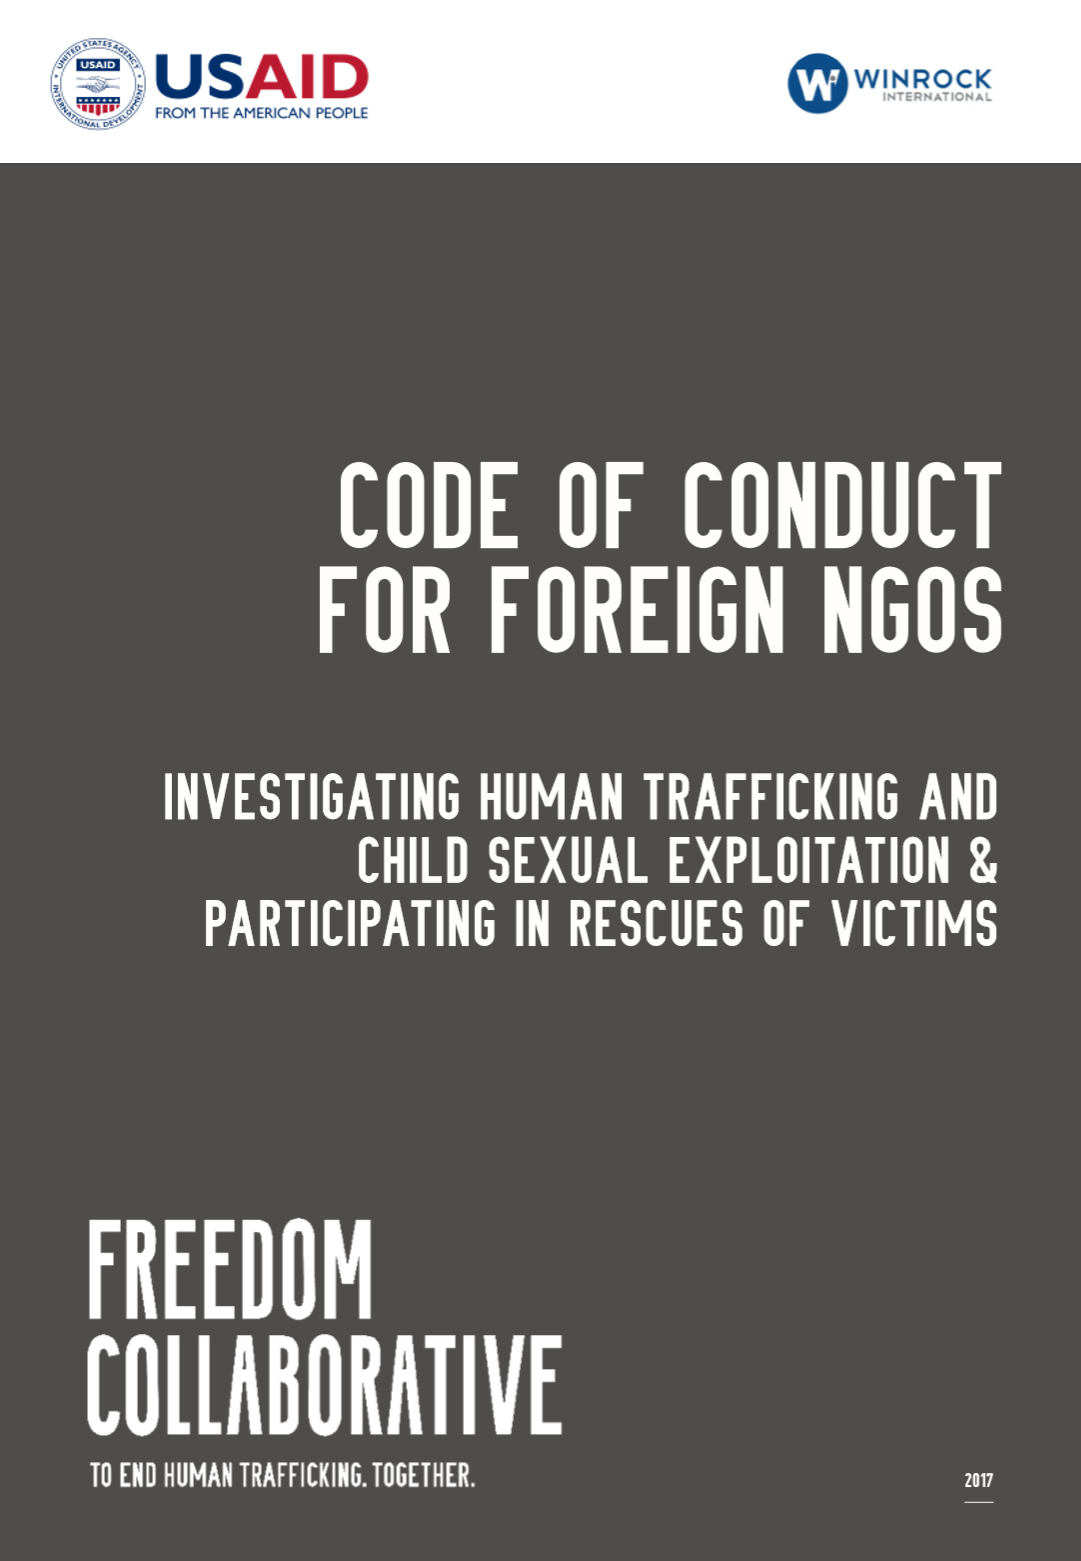 The Code of Conduct is an attempt to set minimum standard for investigative NGOs operating in Southeast Asia. It seeks to set and uphold professional standards for the protection of victims of trafficking, NGO personnel, the integrity of the criminal justice process and the reputation of all parties in the sector. - By: Liberty Asia, Nvader, Agape International Missions, British Consulate (Thailand)